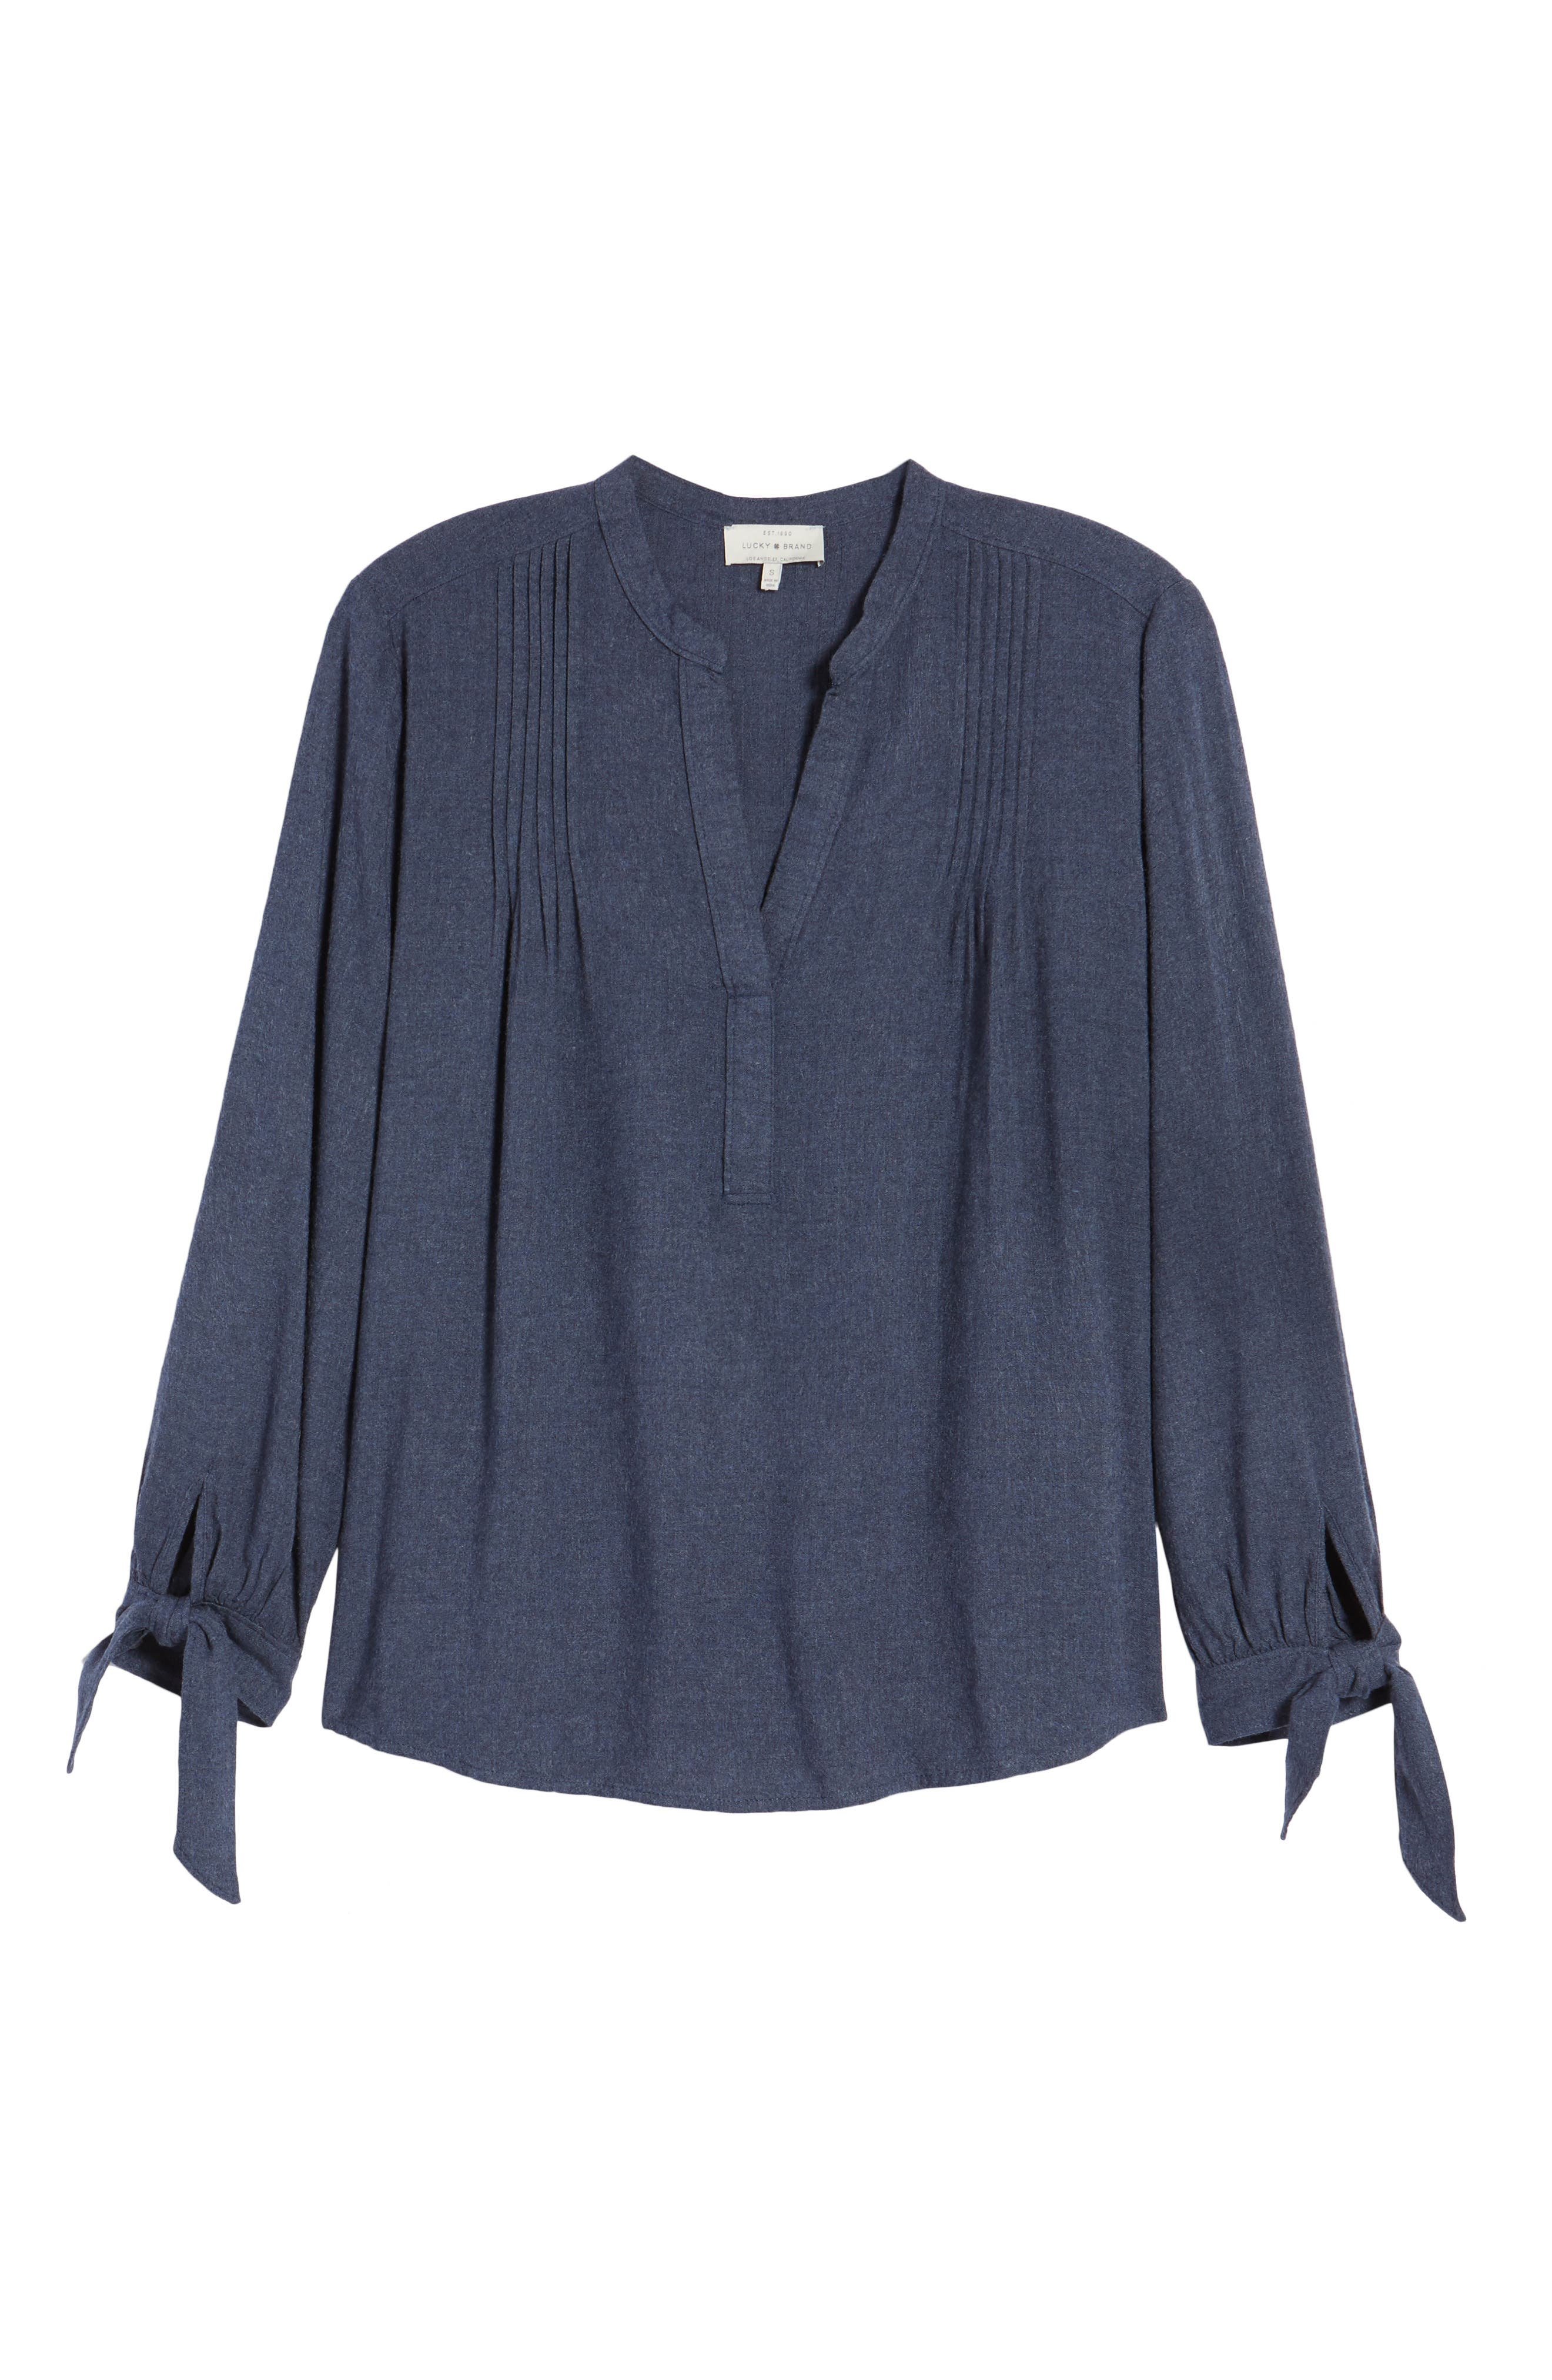 Tie Sleeve Top,                             Alternate thumbnail 6, color,                             467